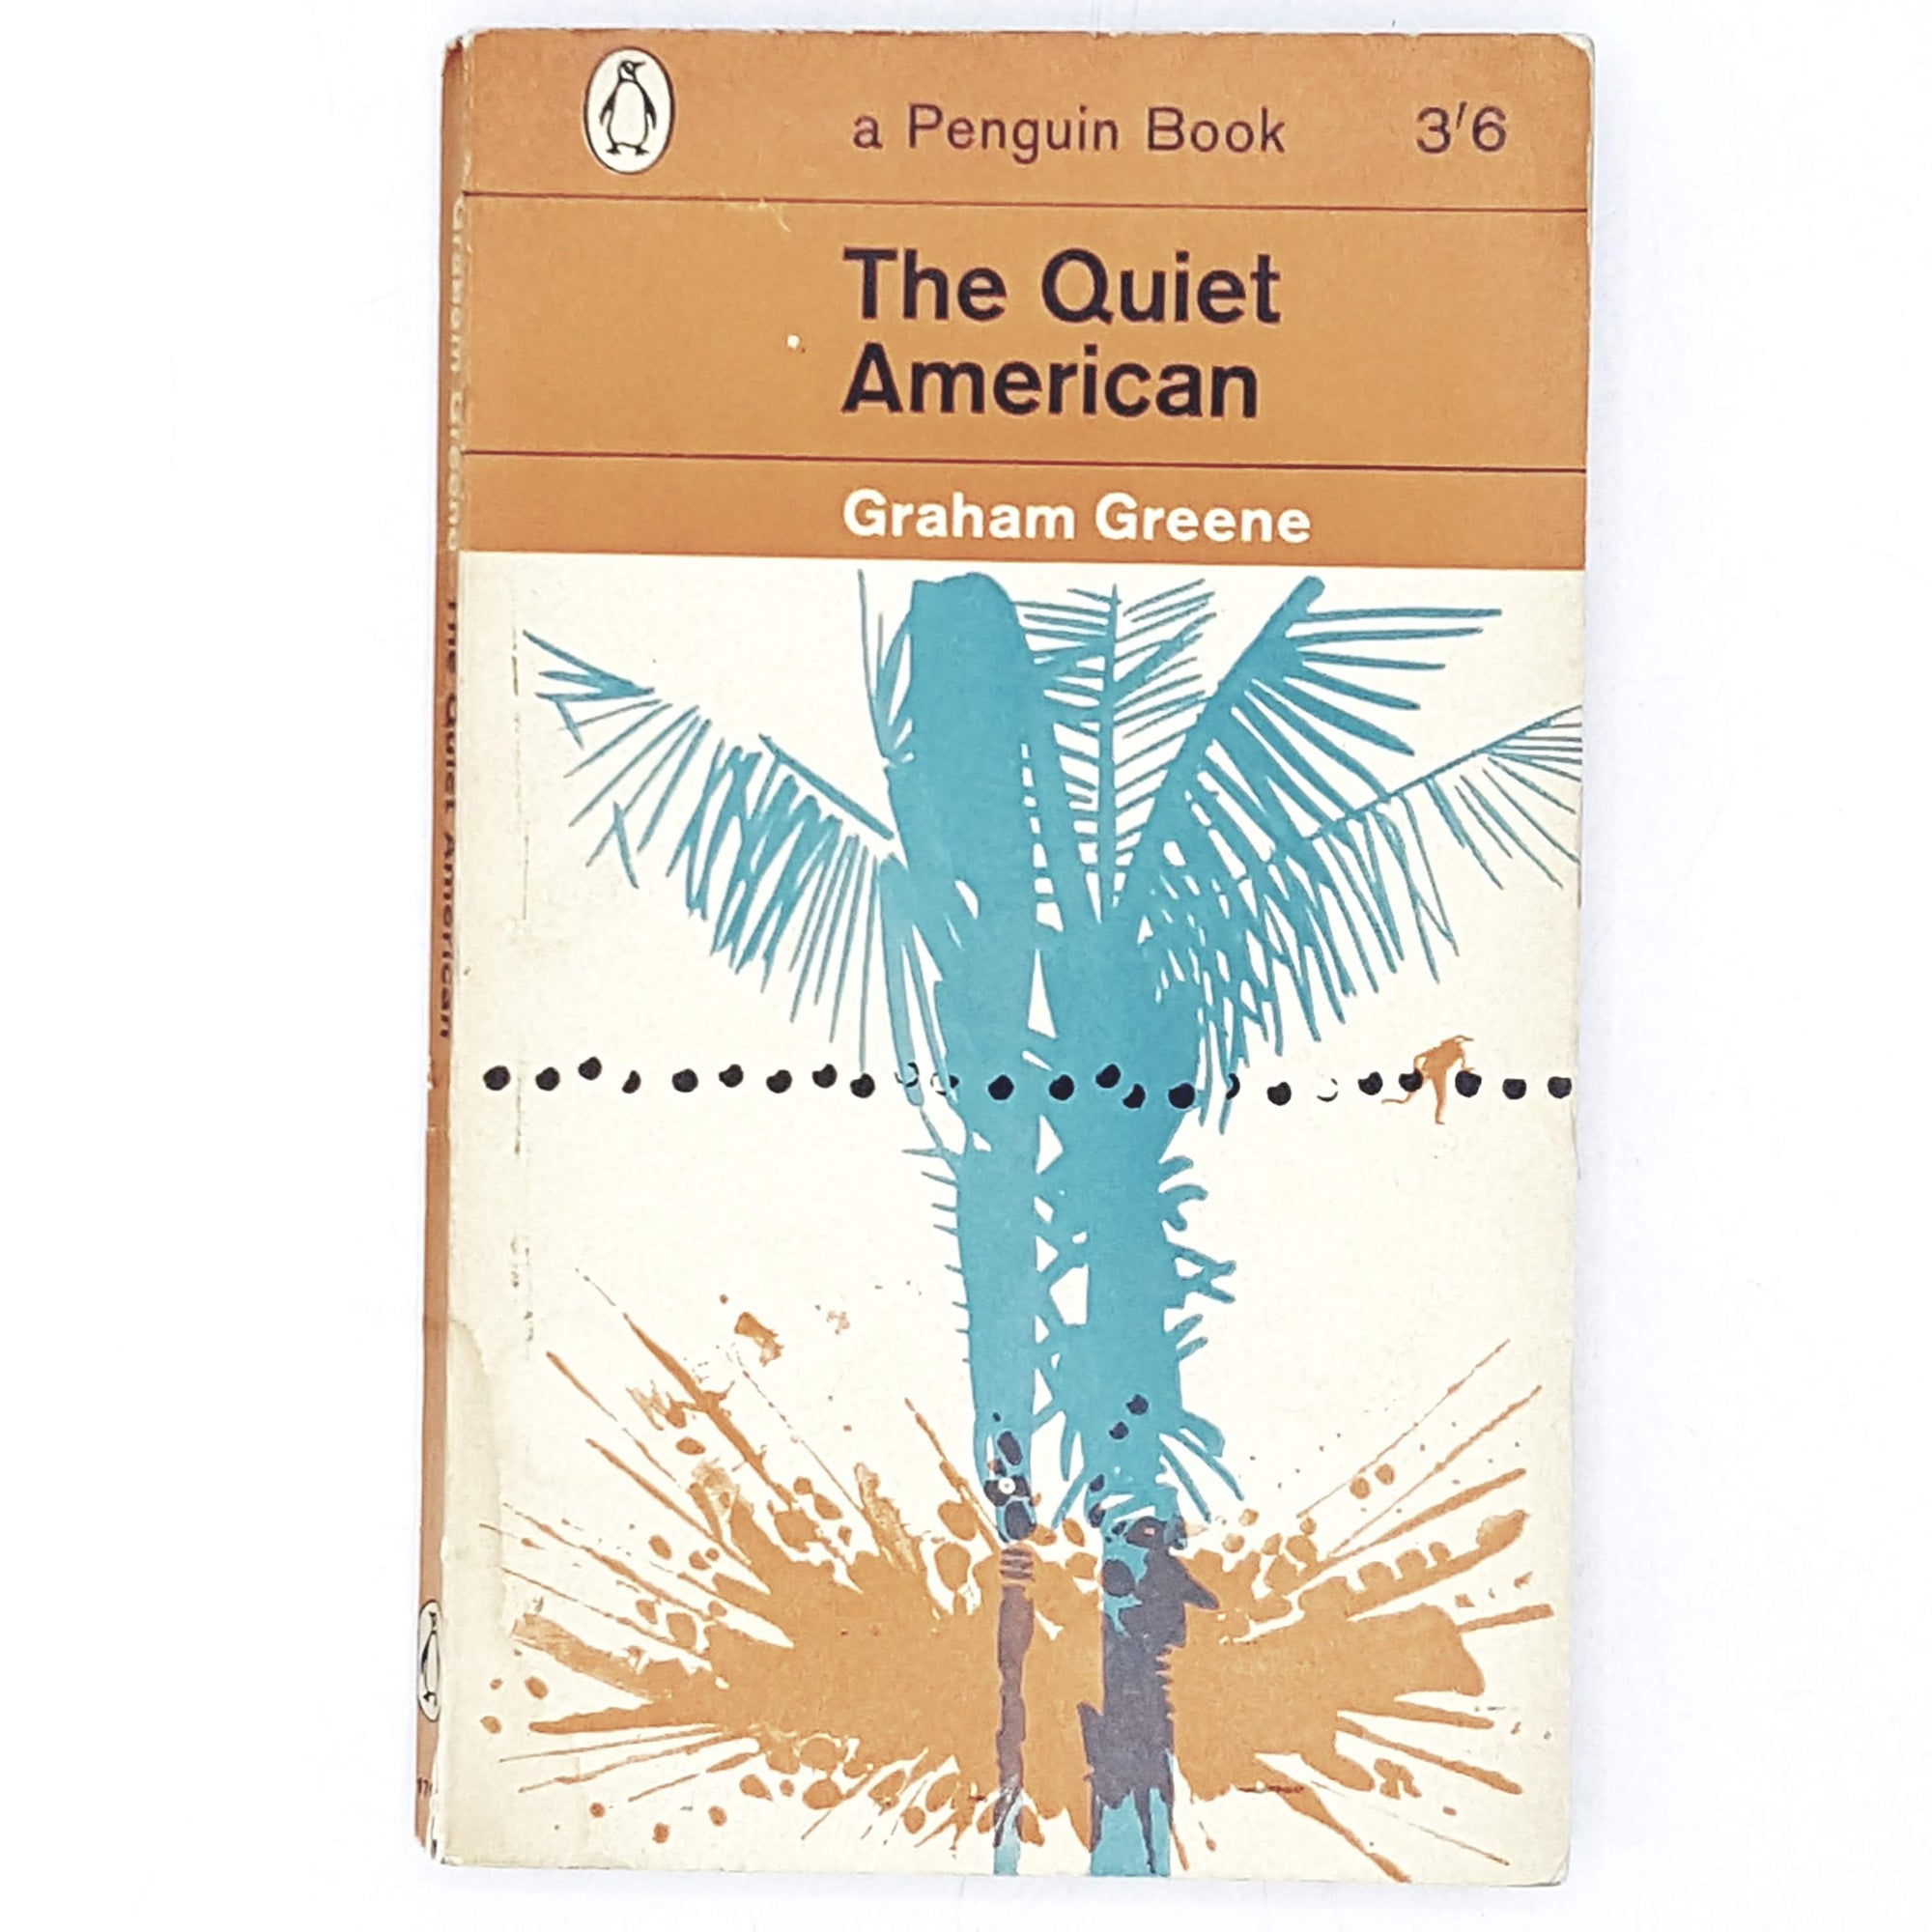 Graham Greene's The Quiet American 1962